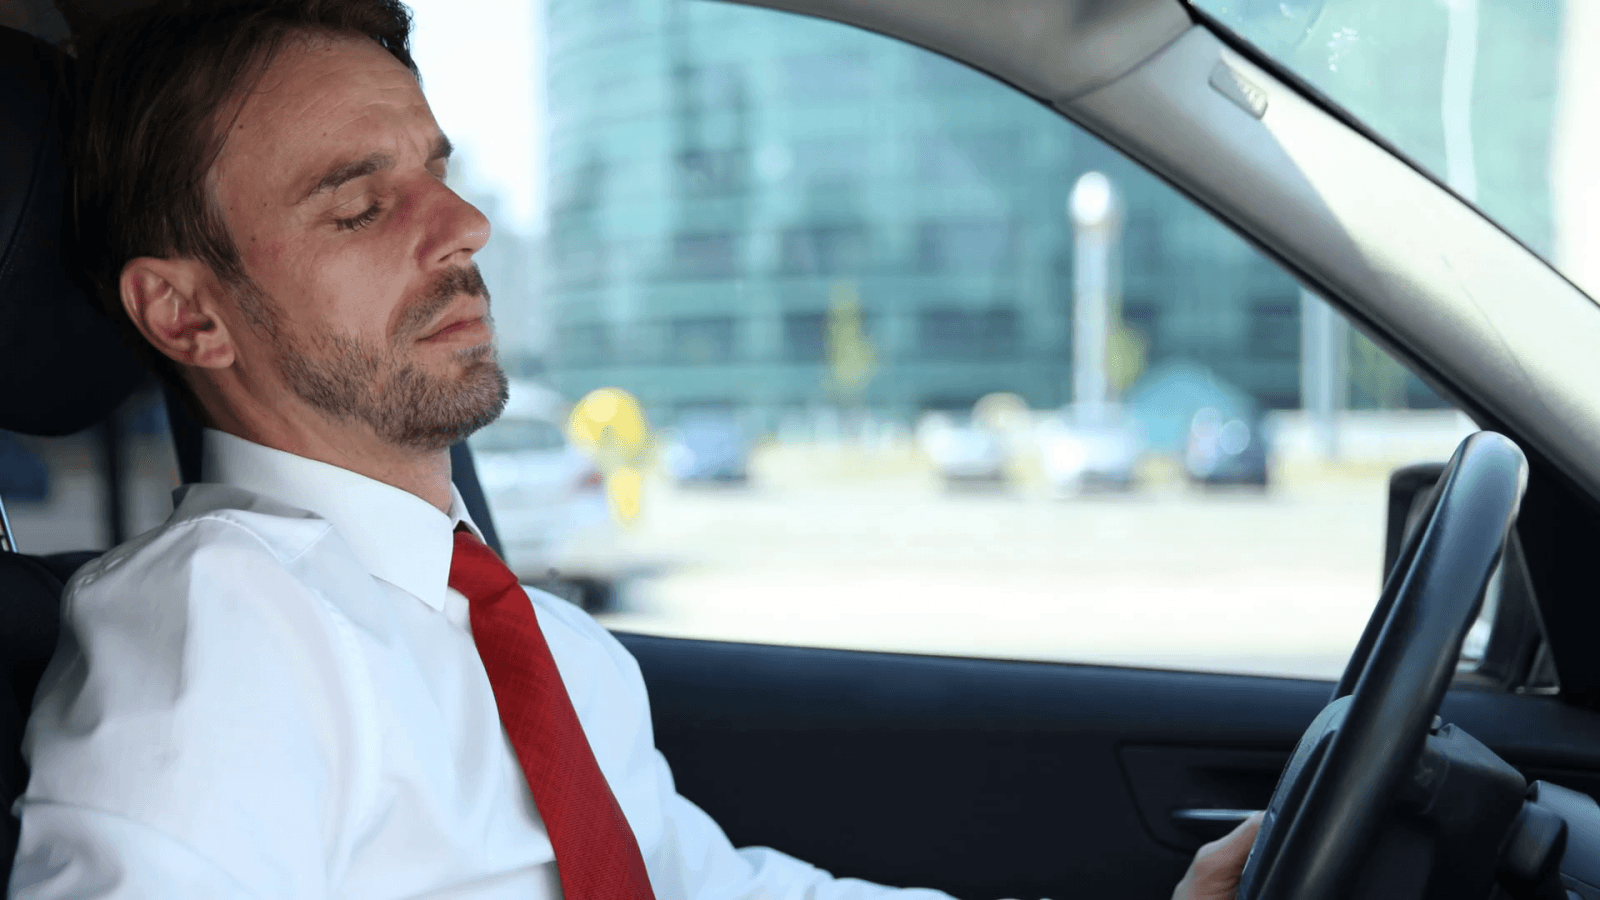 Sleeping In Car >> Everything You Need To Know About Sleeping In Car With Engine On